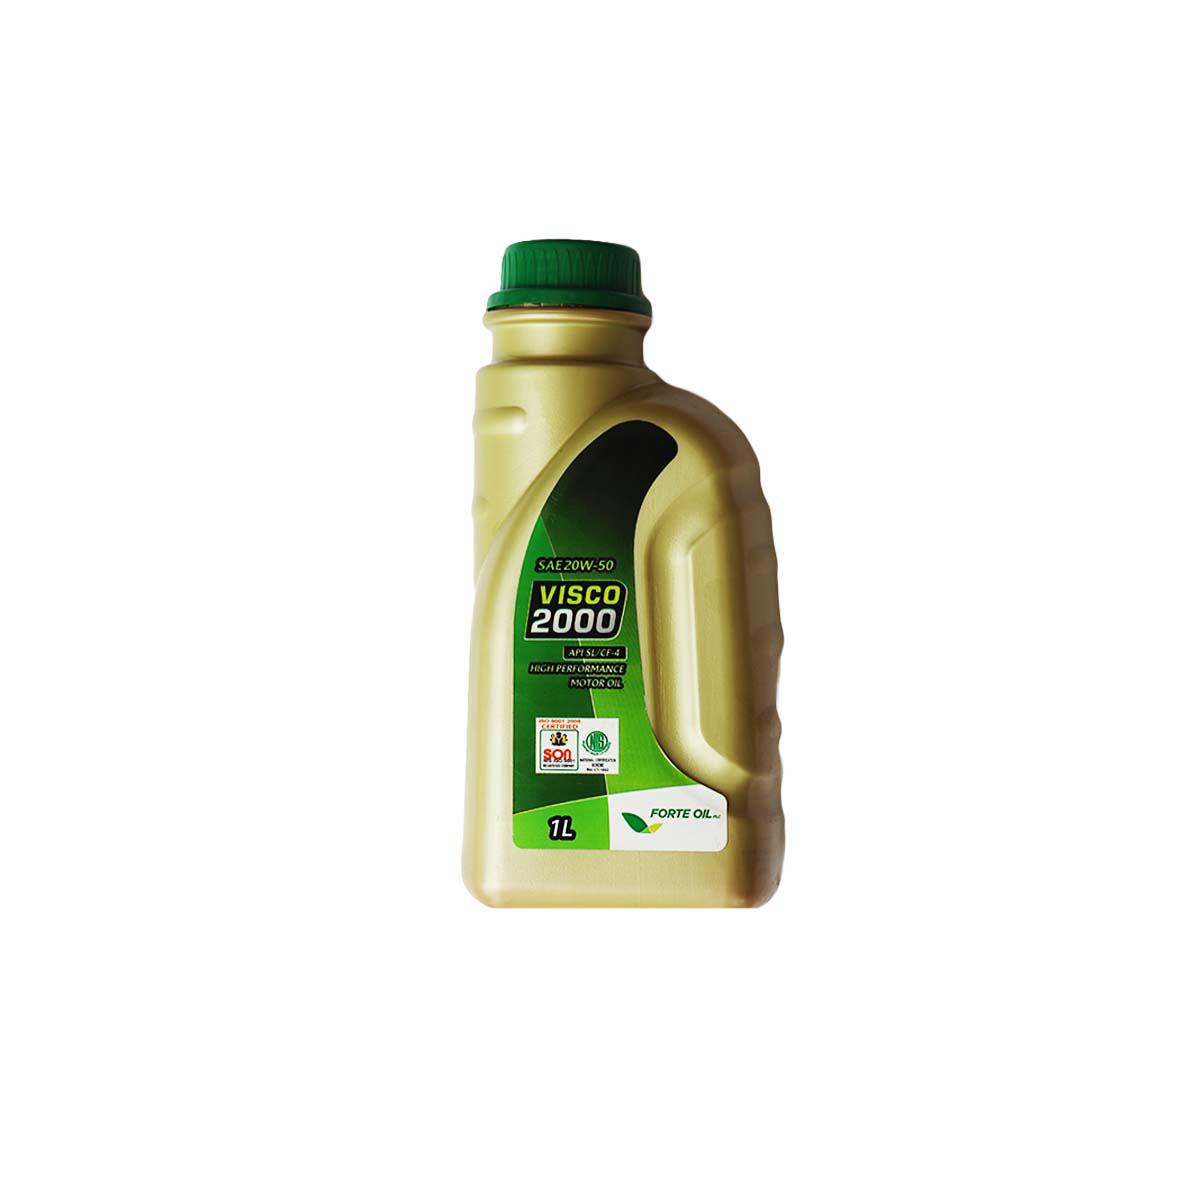 ORIGINAL VISCO 2000 ENGINE OIL